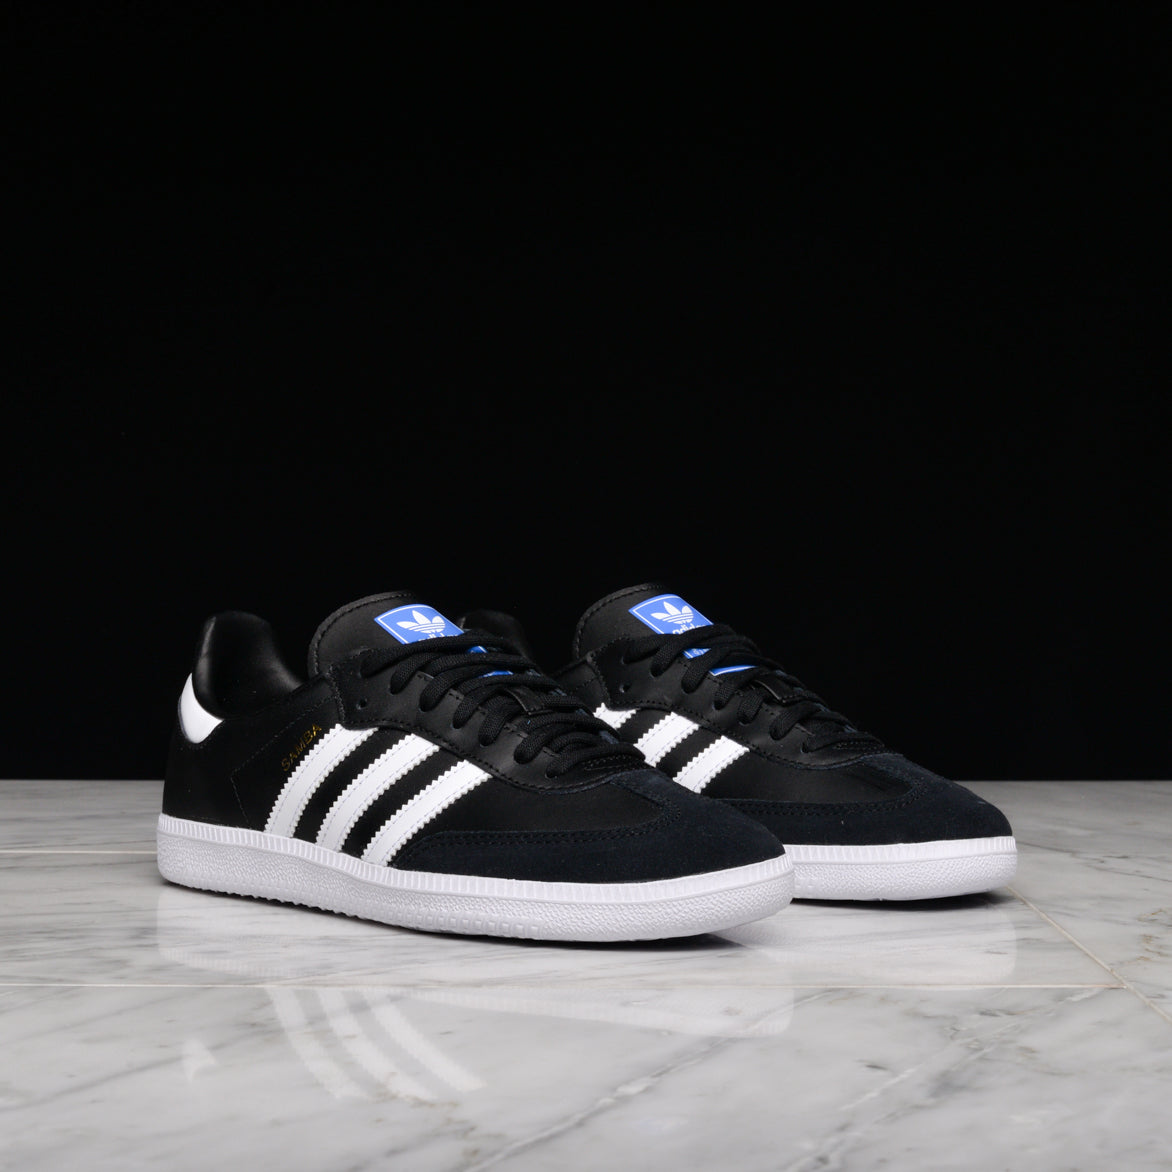 SAMBA OG (JUNIOR) - BLACK / WHITE